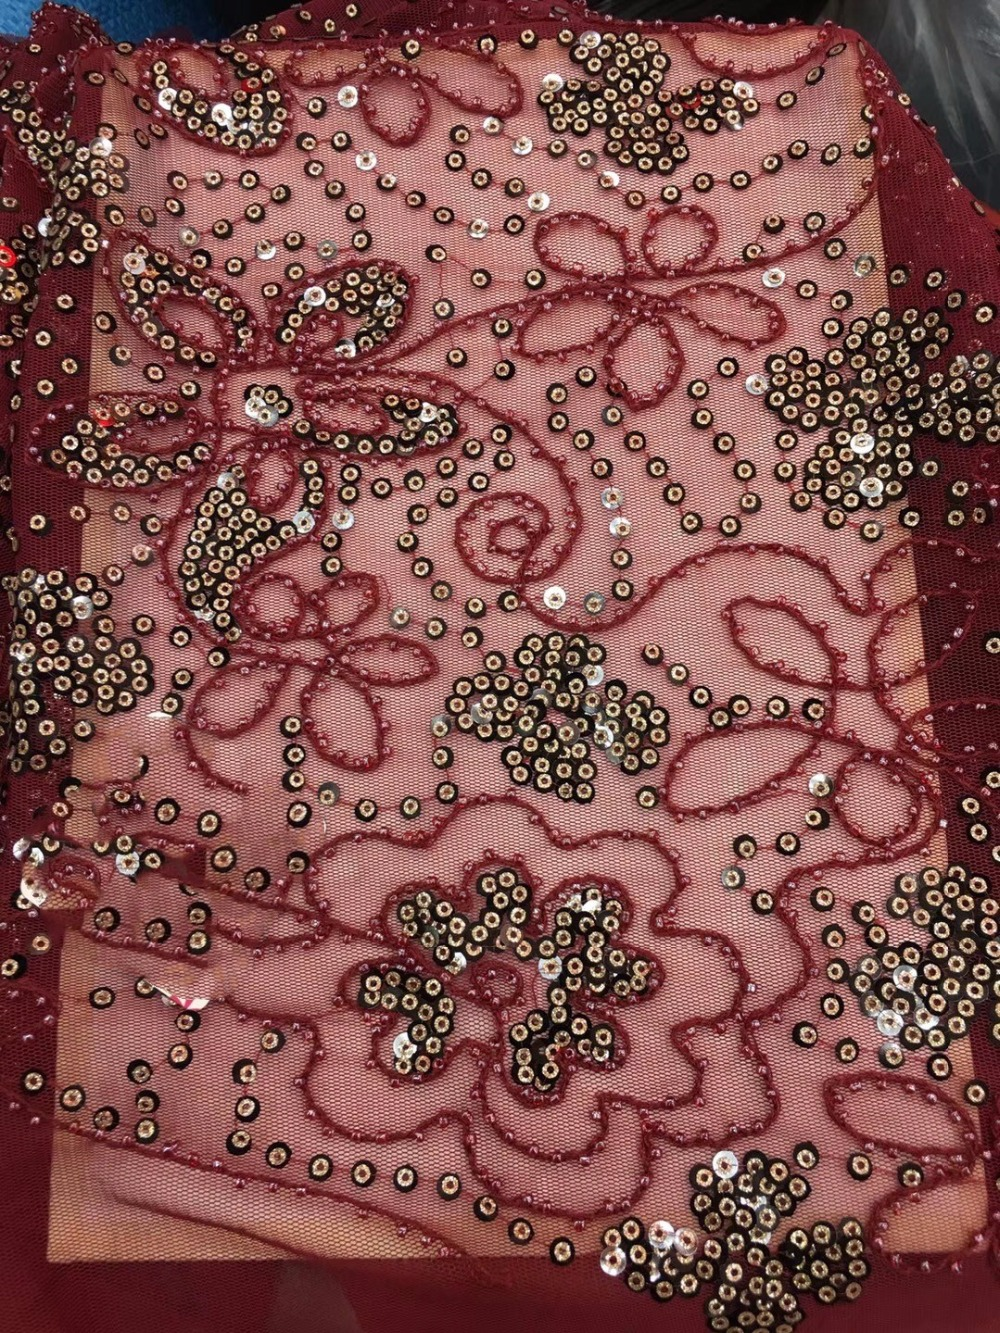 2018 New Design African Lace Fabrics High Quality with sequins Guipure Lace Fabric For Party Dress Nigerian Lace Fabric2018 New Design African Lace Fabrics High Quality with sequins Guipure Lace Fabric For Party Dress Nigerian Lace Fabric